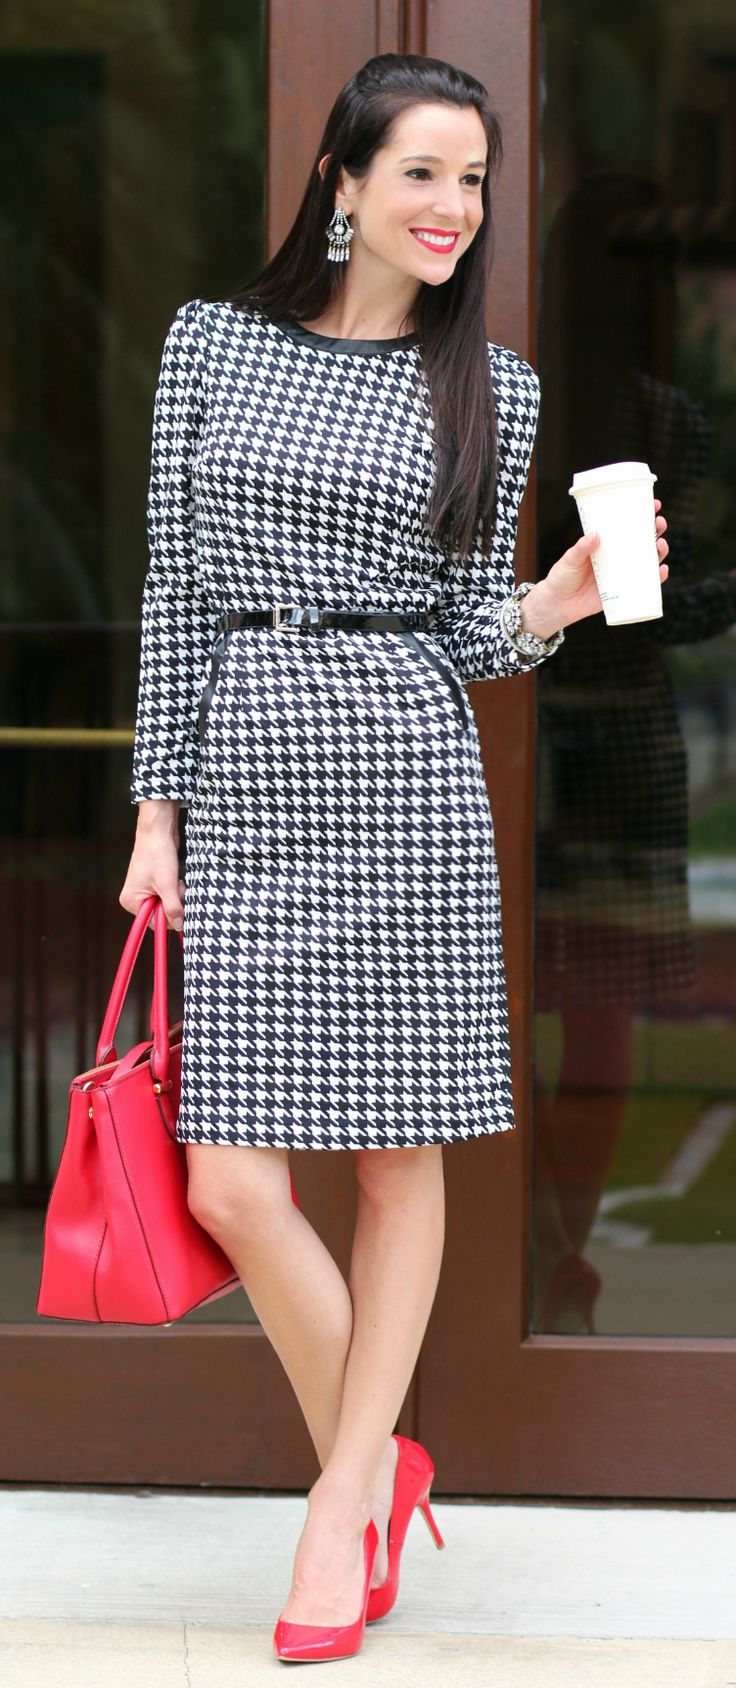 Belted houndstooth sheath cocktail dress with red patent leather pumps, red Ralph Lauren satchel, and silver accessories | Style Guide: What to Wear to a Fashion Show + 10 trendy outfit ideas that anyone can wear by fashion blogger Stephanie Ziajka from Diary of aDebutante